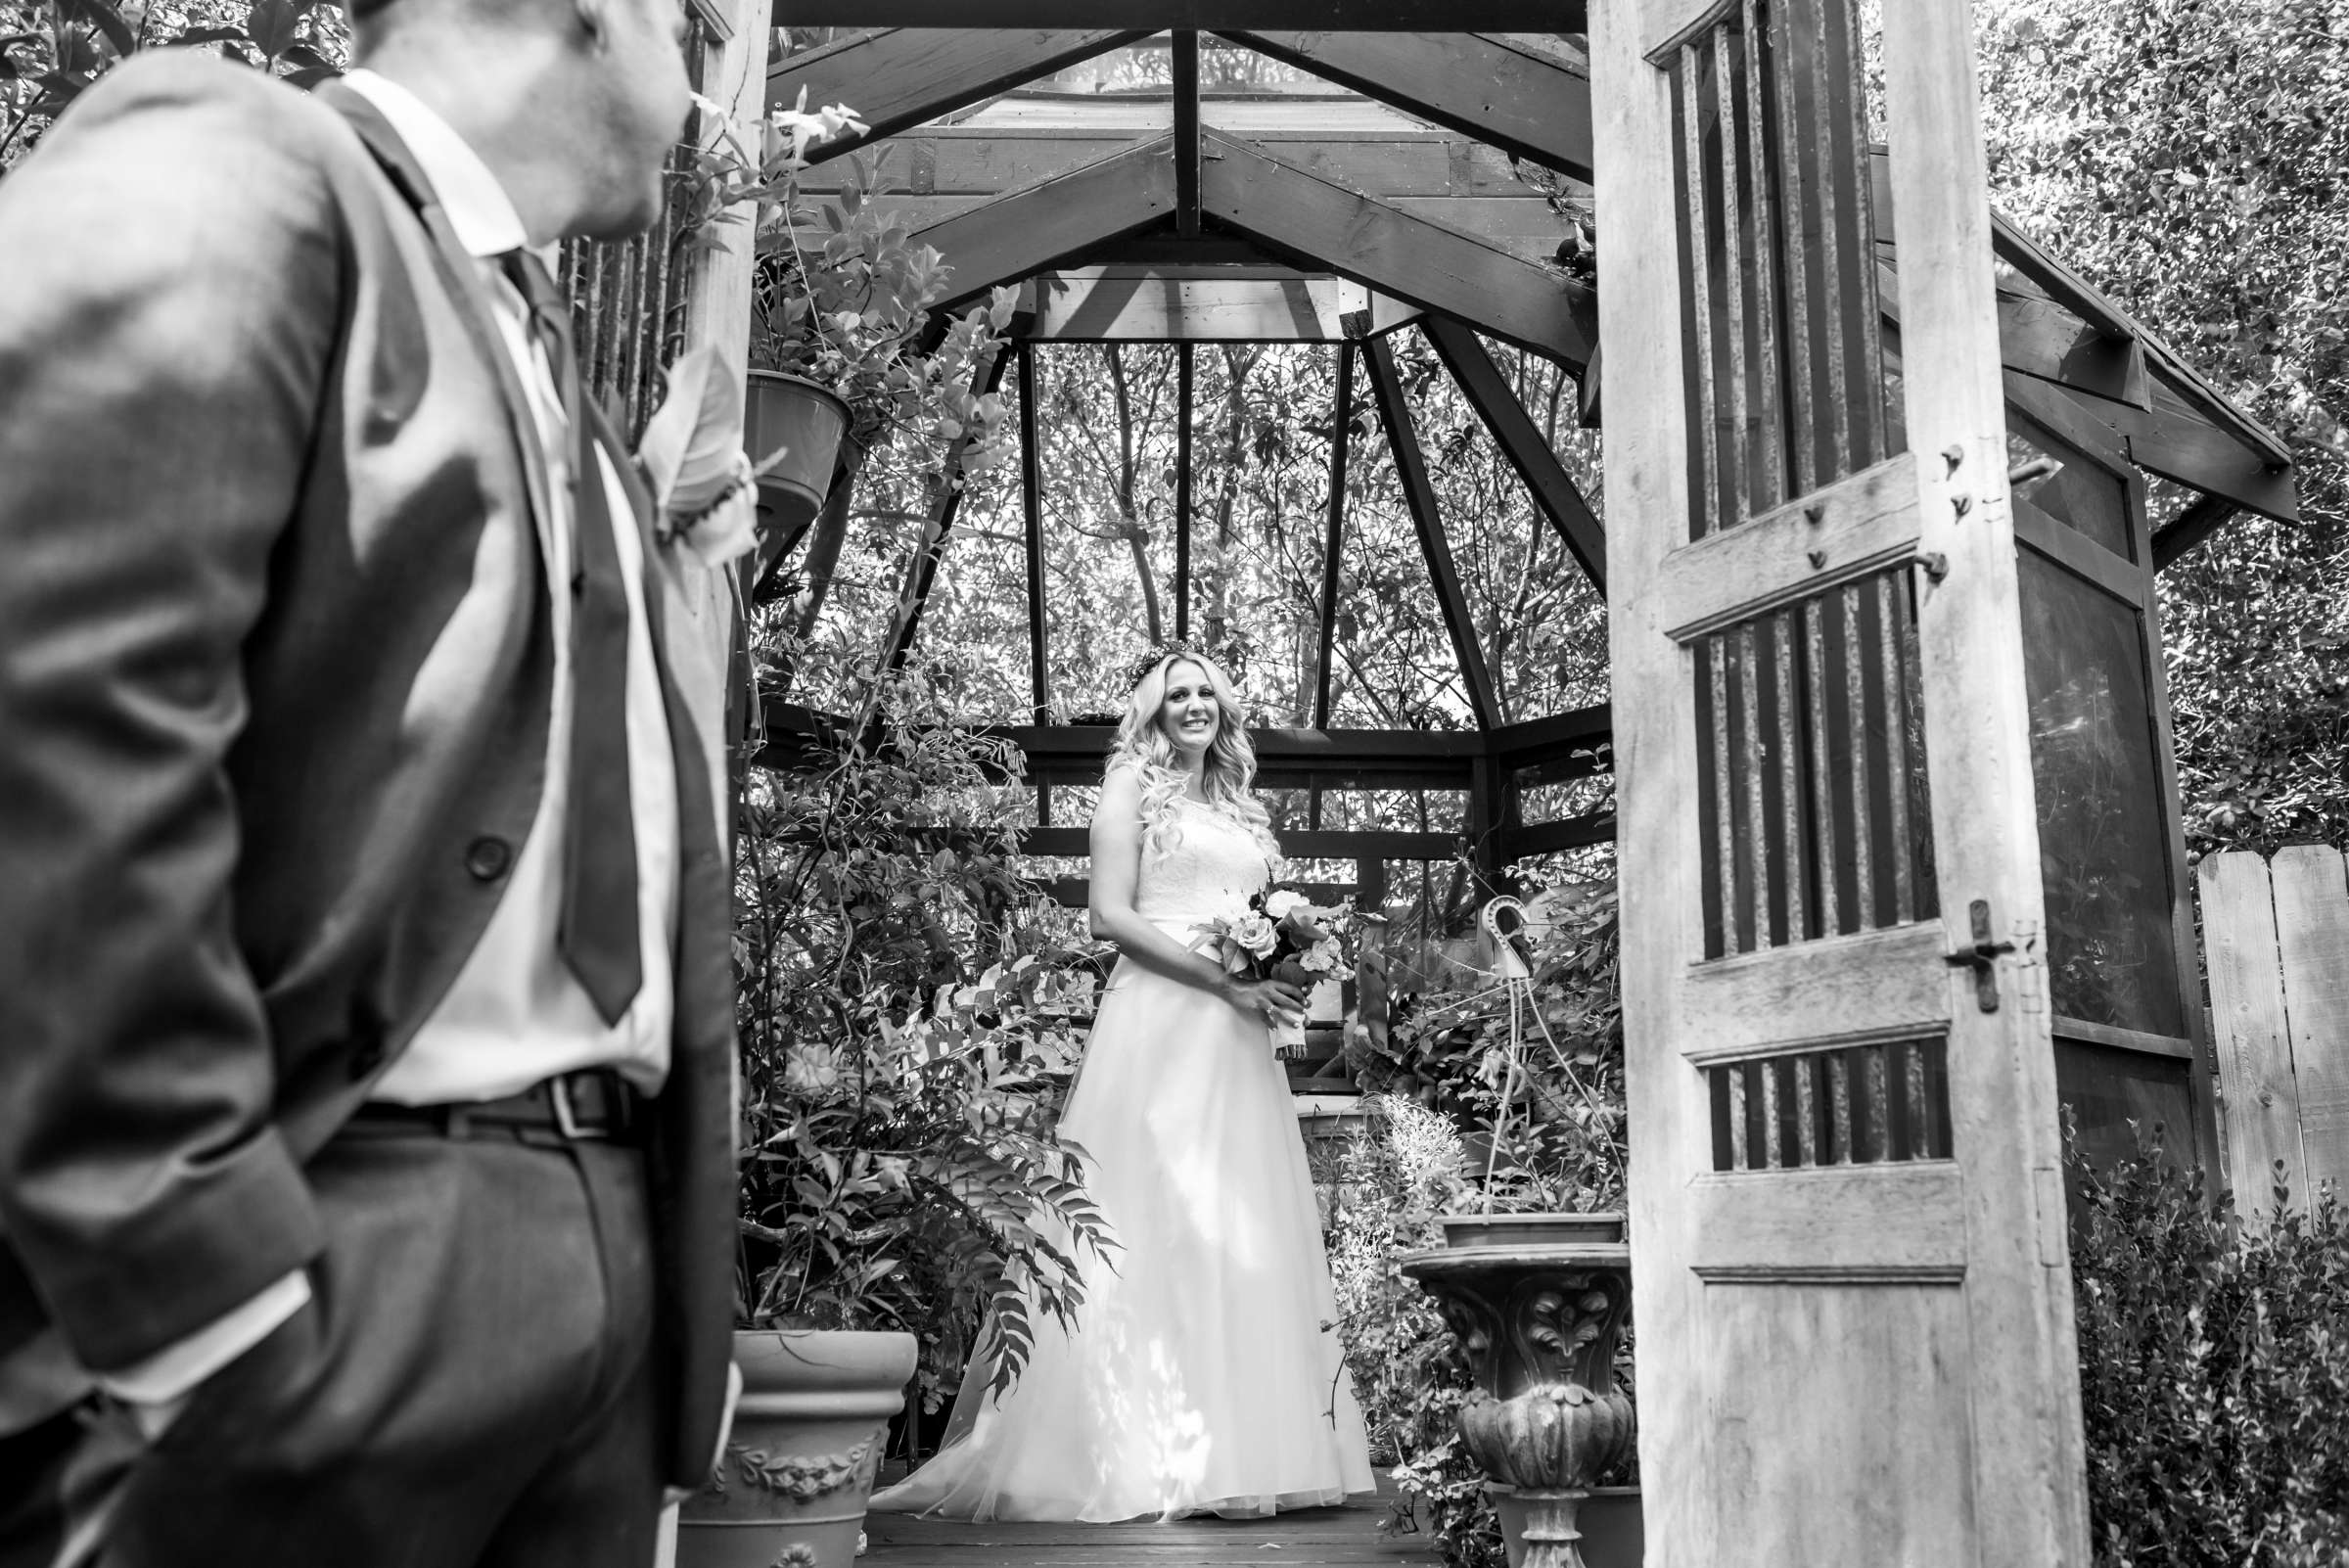 Twin Oaks House & Gardens Wedding Estate Wedding, Brittany and Sean Wedding Photo #8 by True Photography